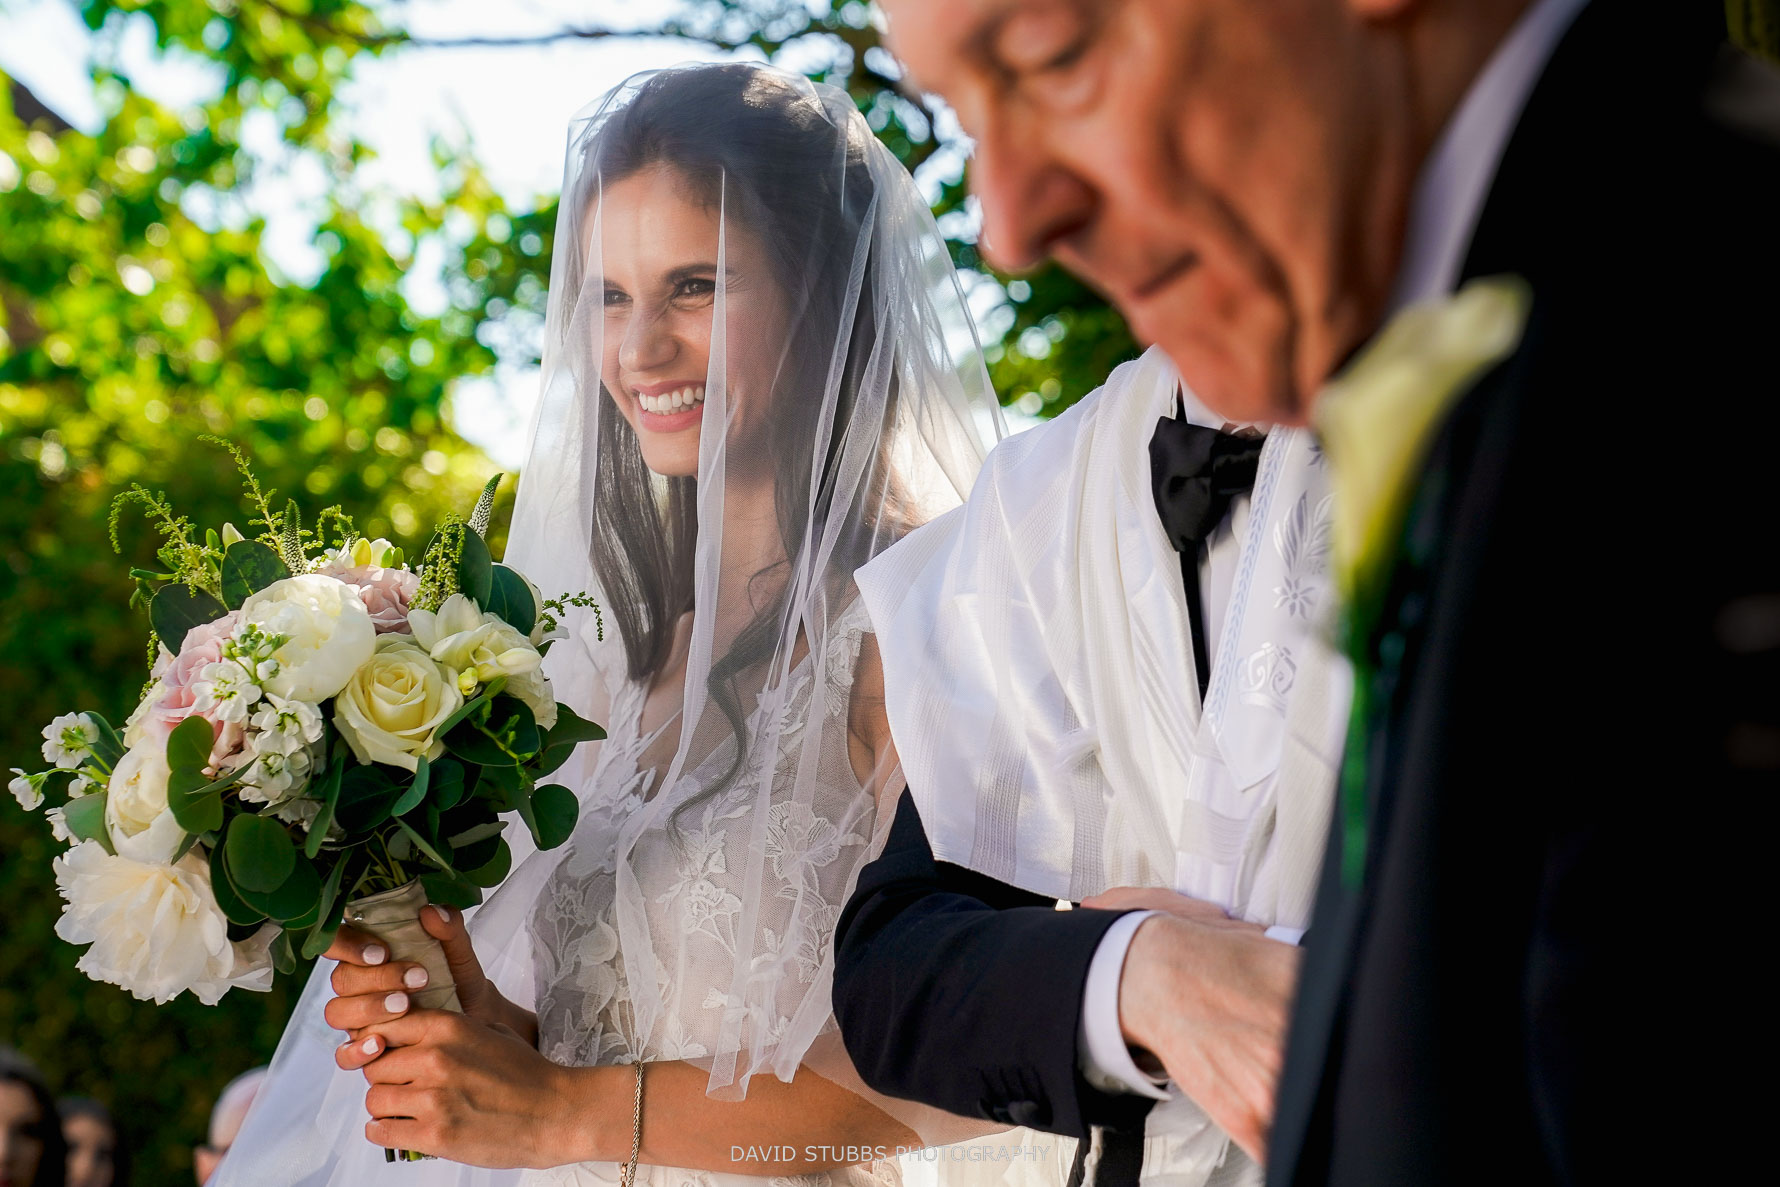 photographing a jewish wedding ceremony